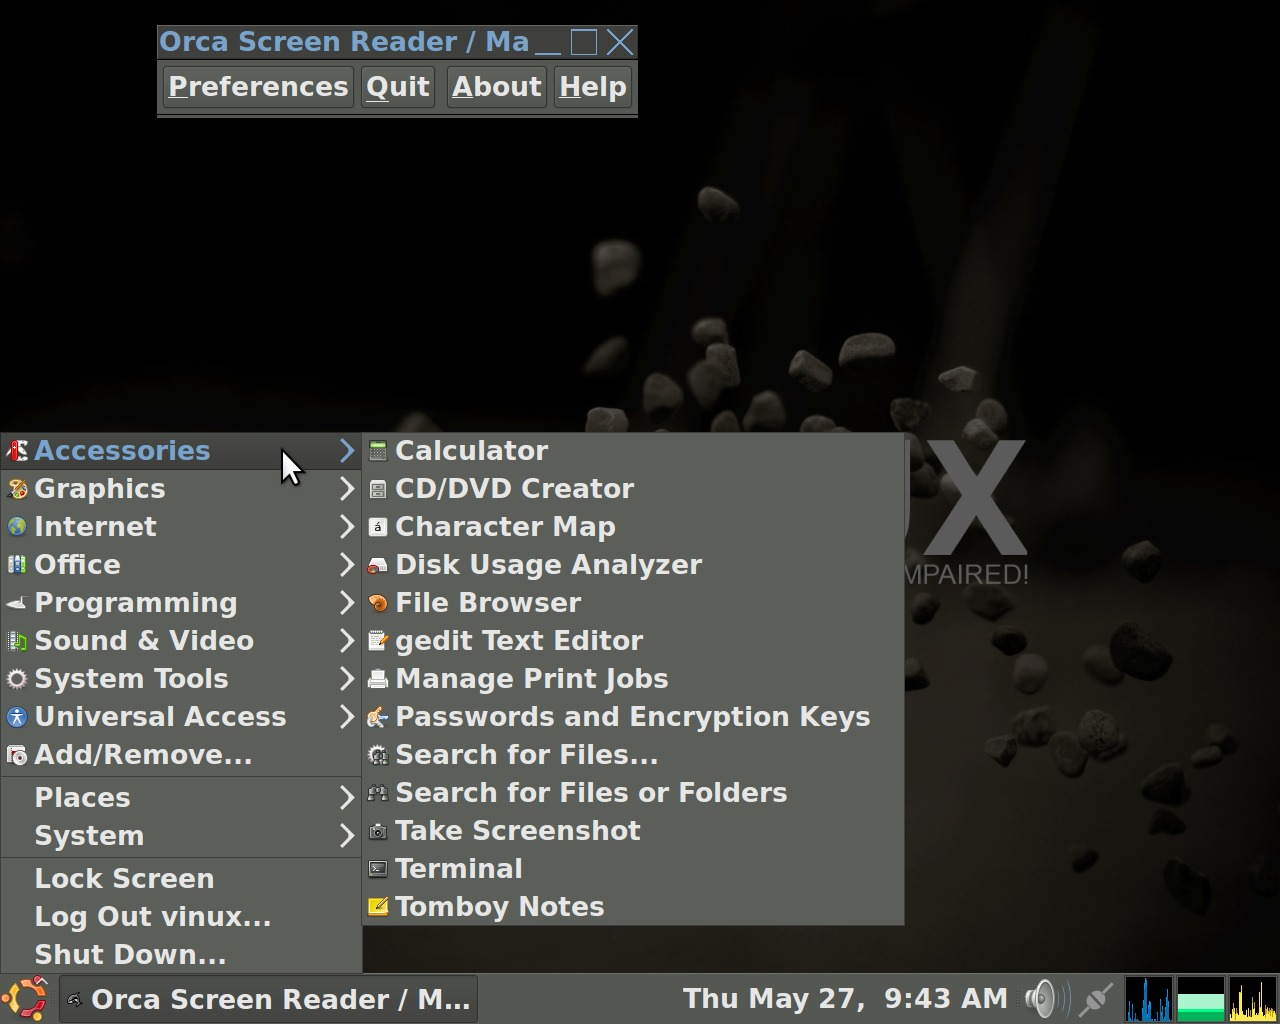 Vinux A Linux Distribution For People With Visual Impairment